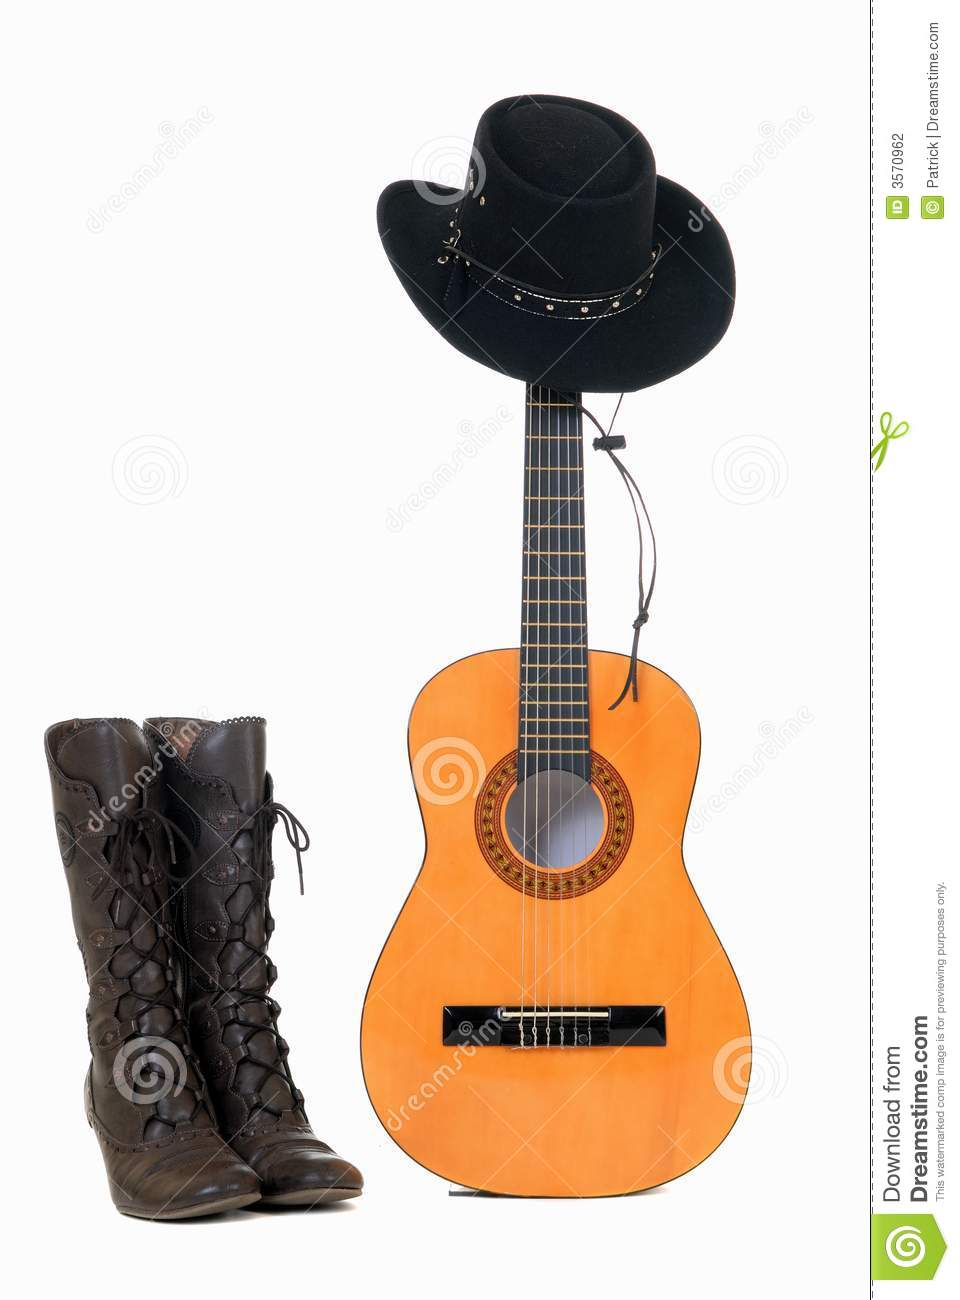 how to play country music on guitar